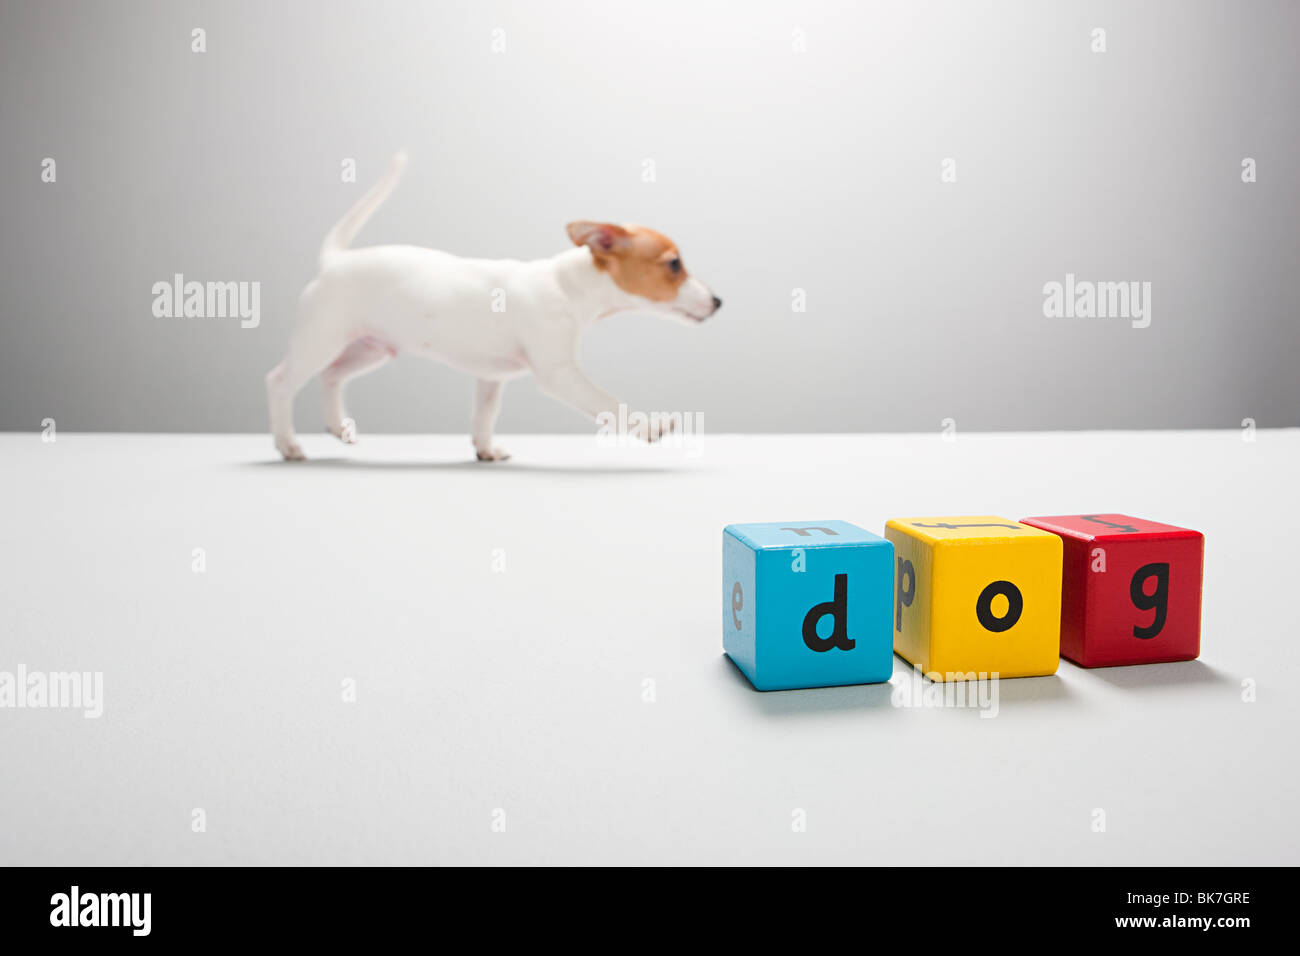 Jack russell puppy and building blocks spelling dog - Stock Image